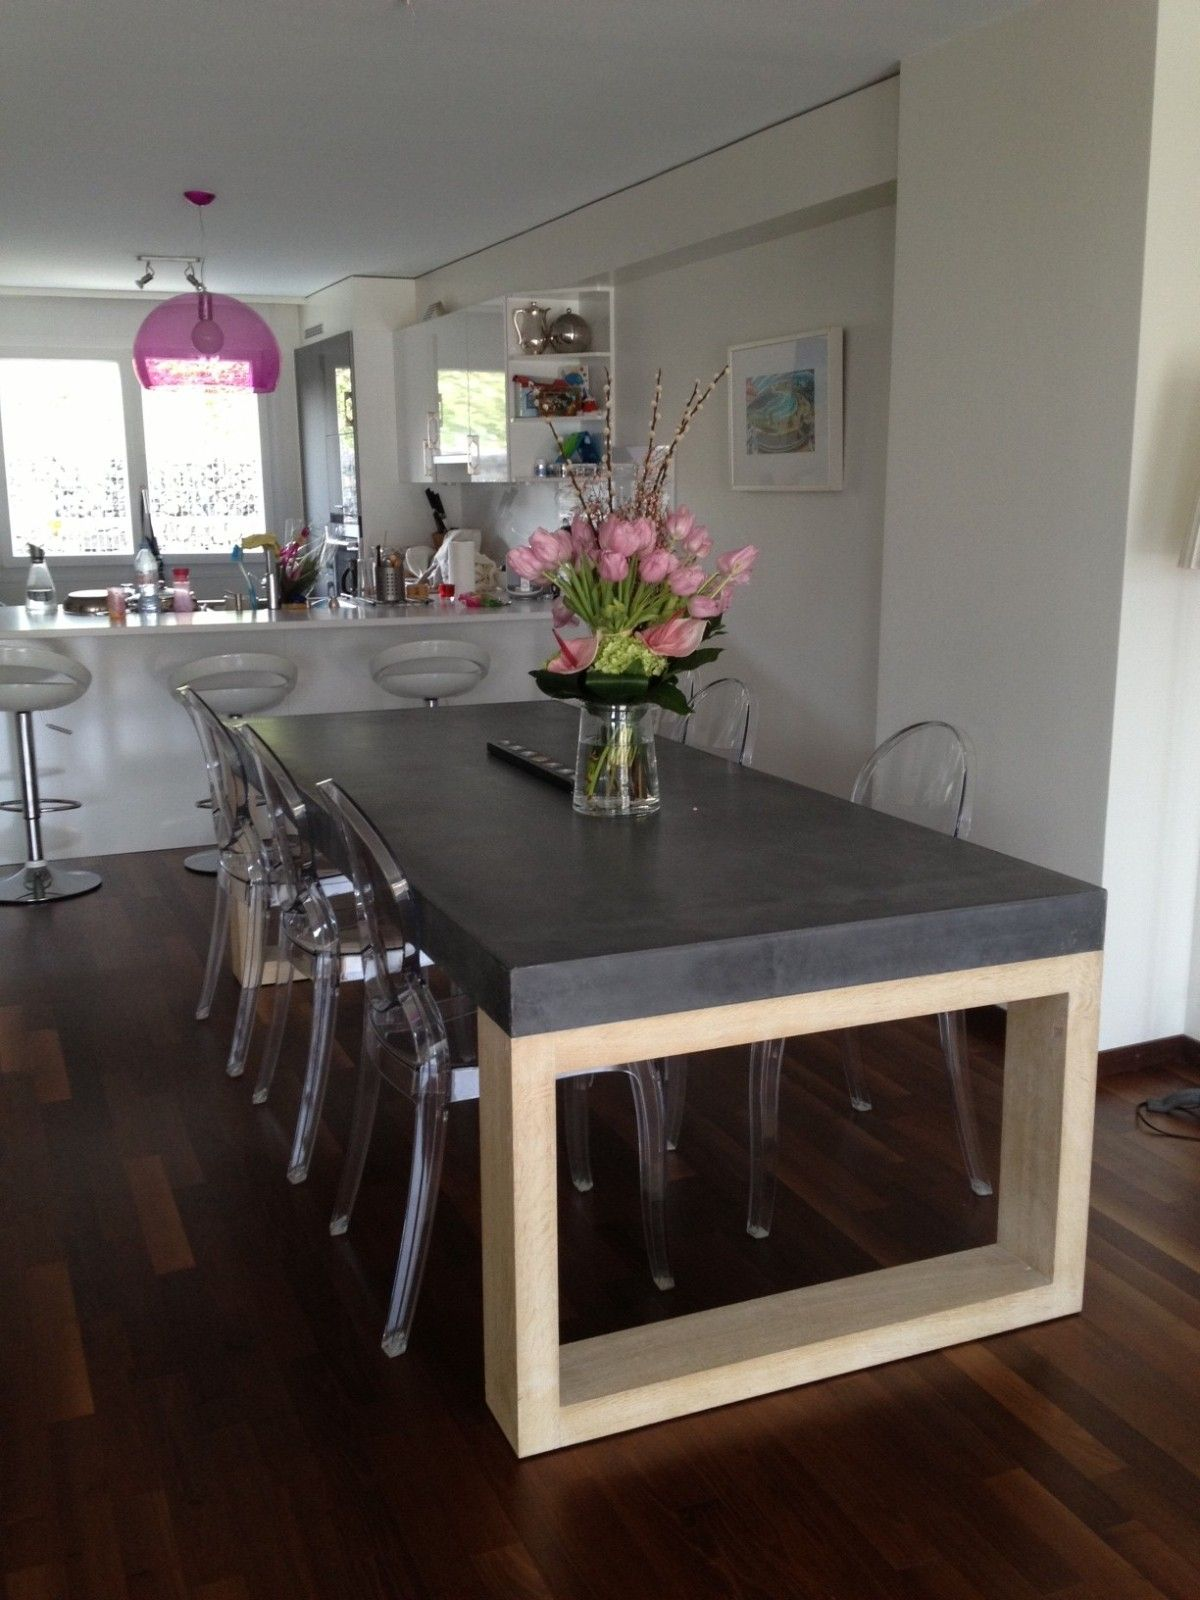 a133.idata.over-blog.com 5 28 03 81 table pied-en-chene table ...